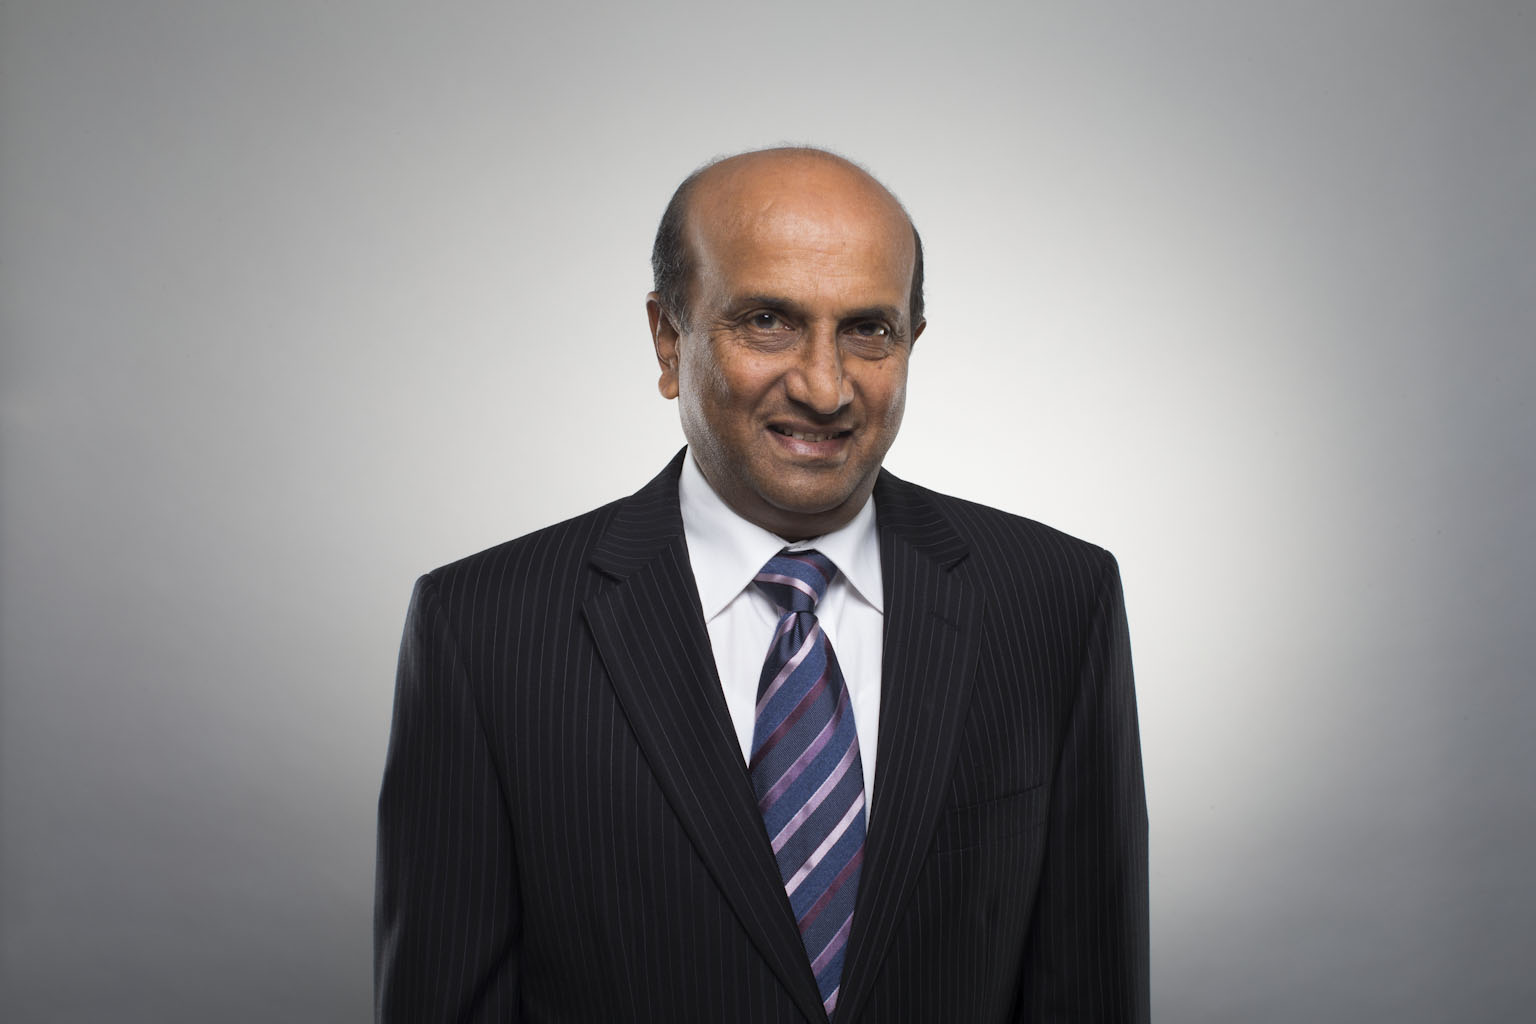 Carroll & O'Dea Lawyers congratulates partner Maithri Panagoda on being awarded Order of Australia in Queen's Birthday Honours